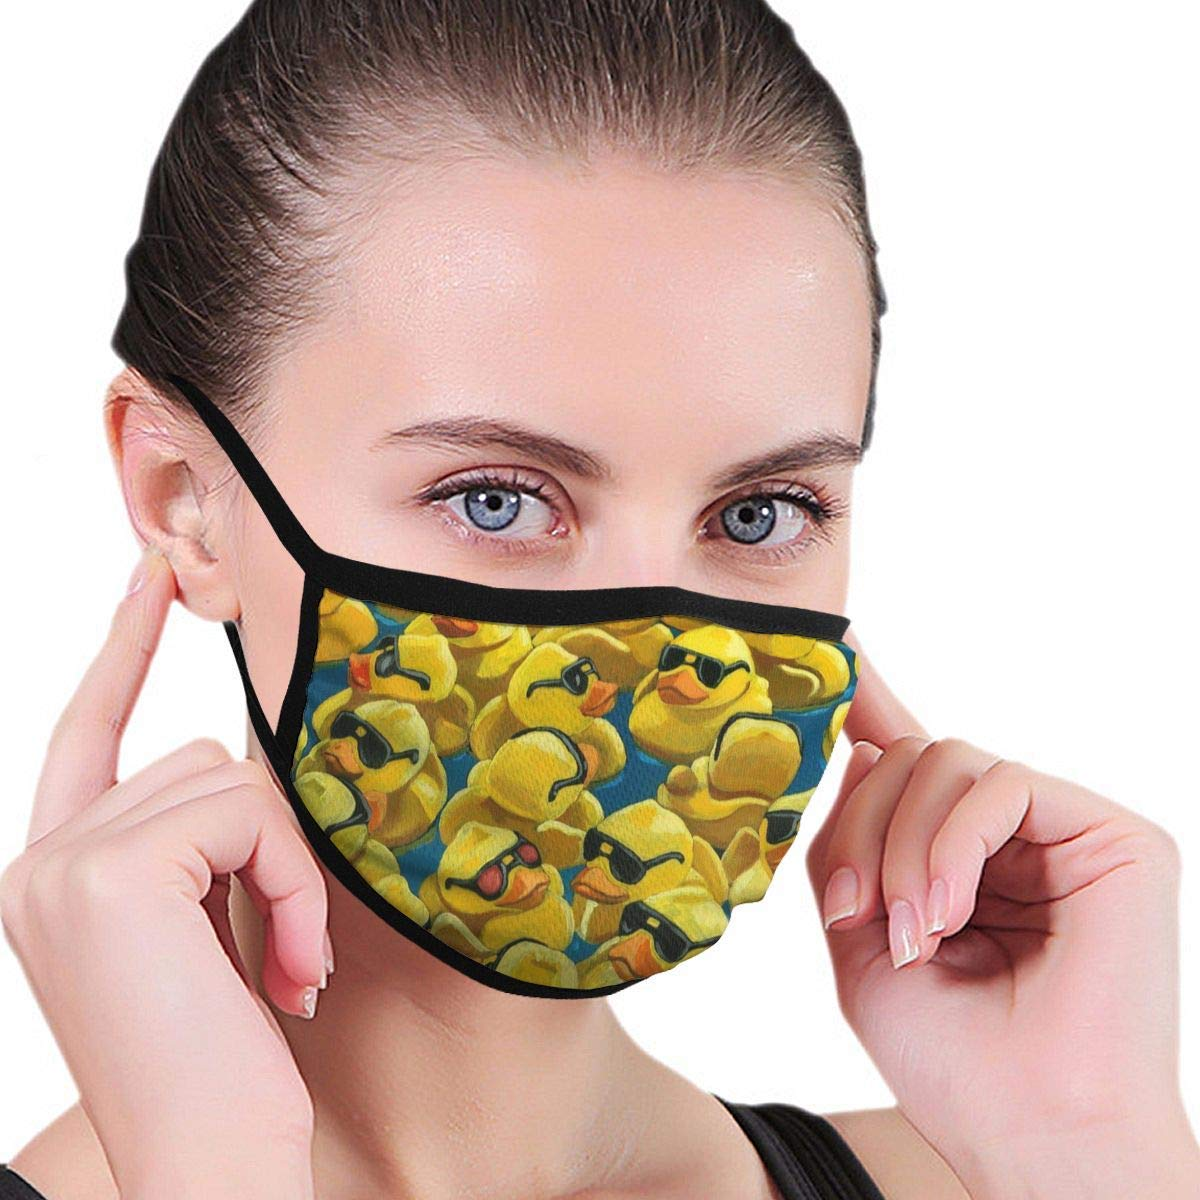 Bdwuhs Mascarillas Bucales Rubber Duck Painting Washable Reusable Mouth Mask Cotton Anti Dust Half Face Mouth Mask For Men Women Dustproof with Adjustable Ear Loops